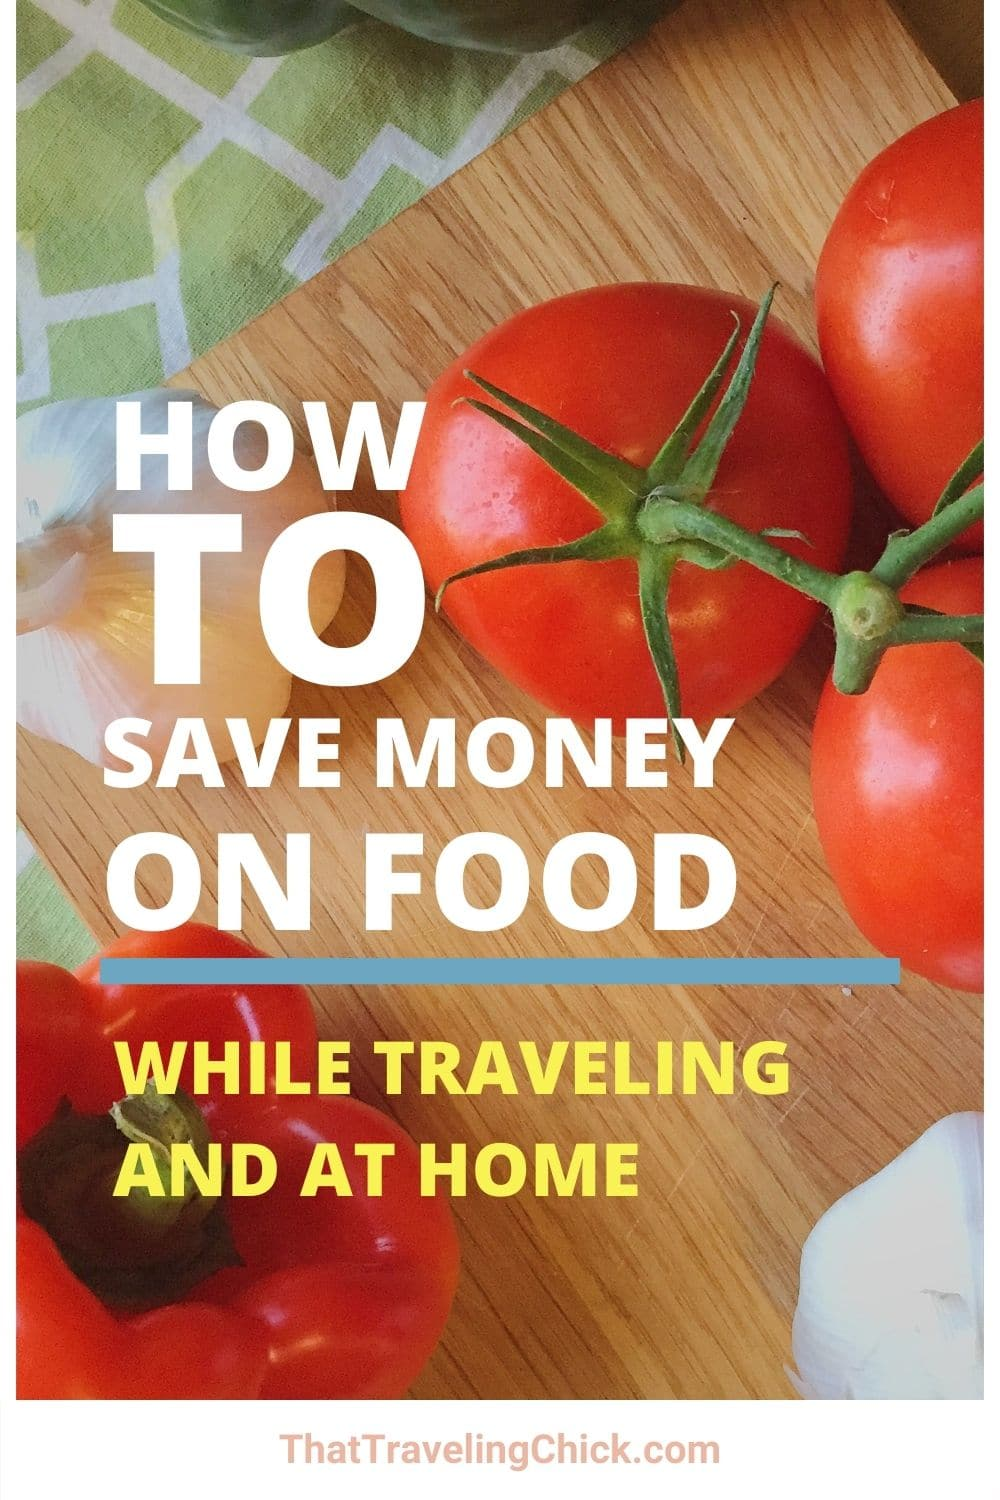 Save Money on Food When Traveling and at Home